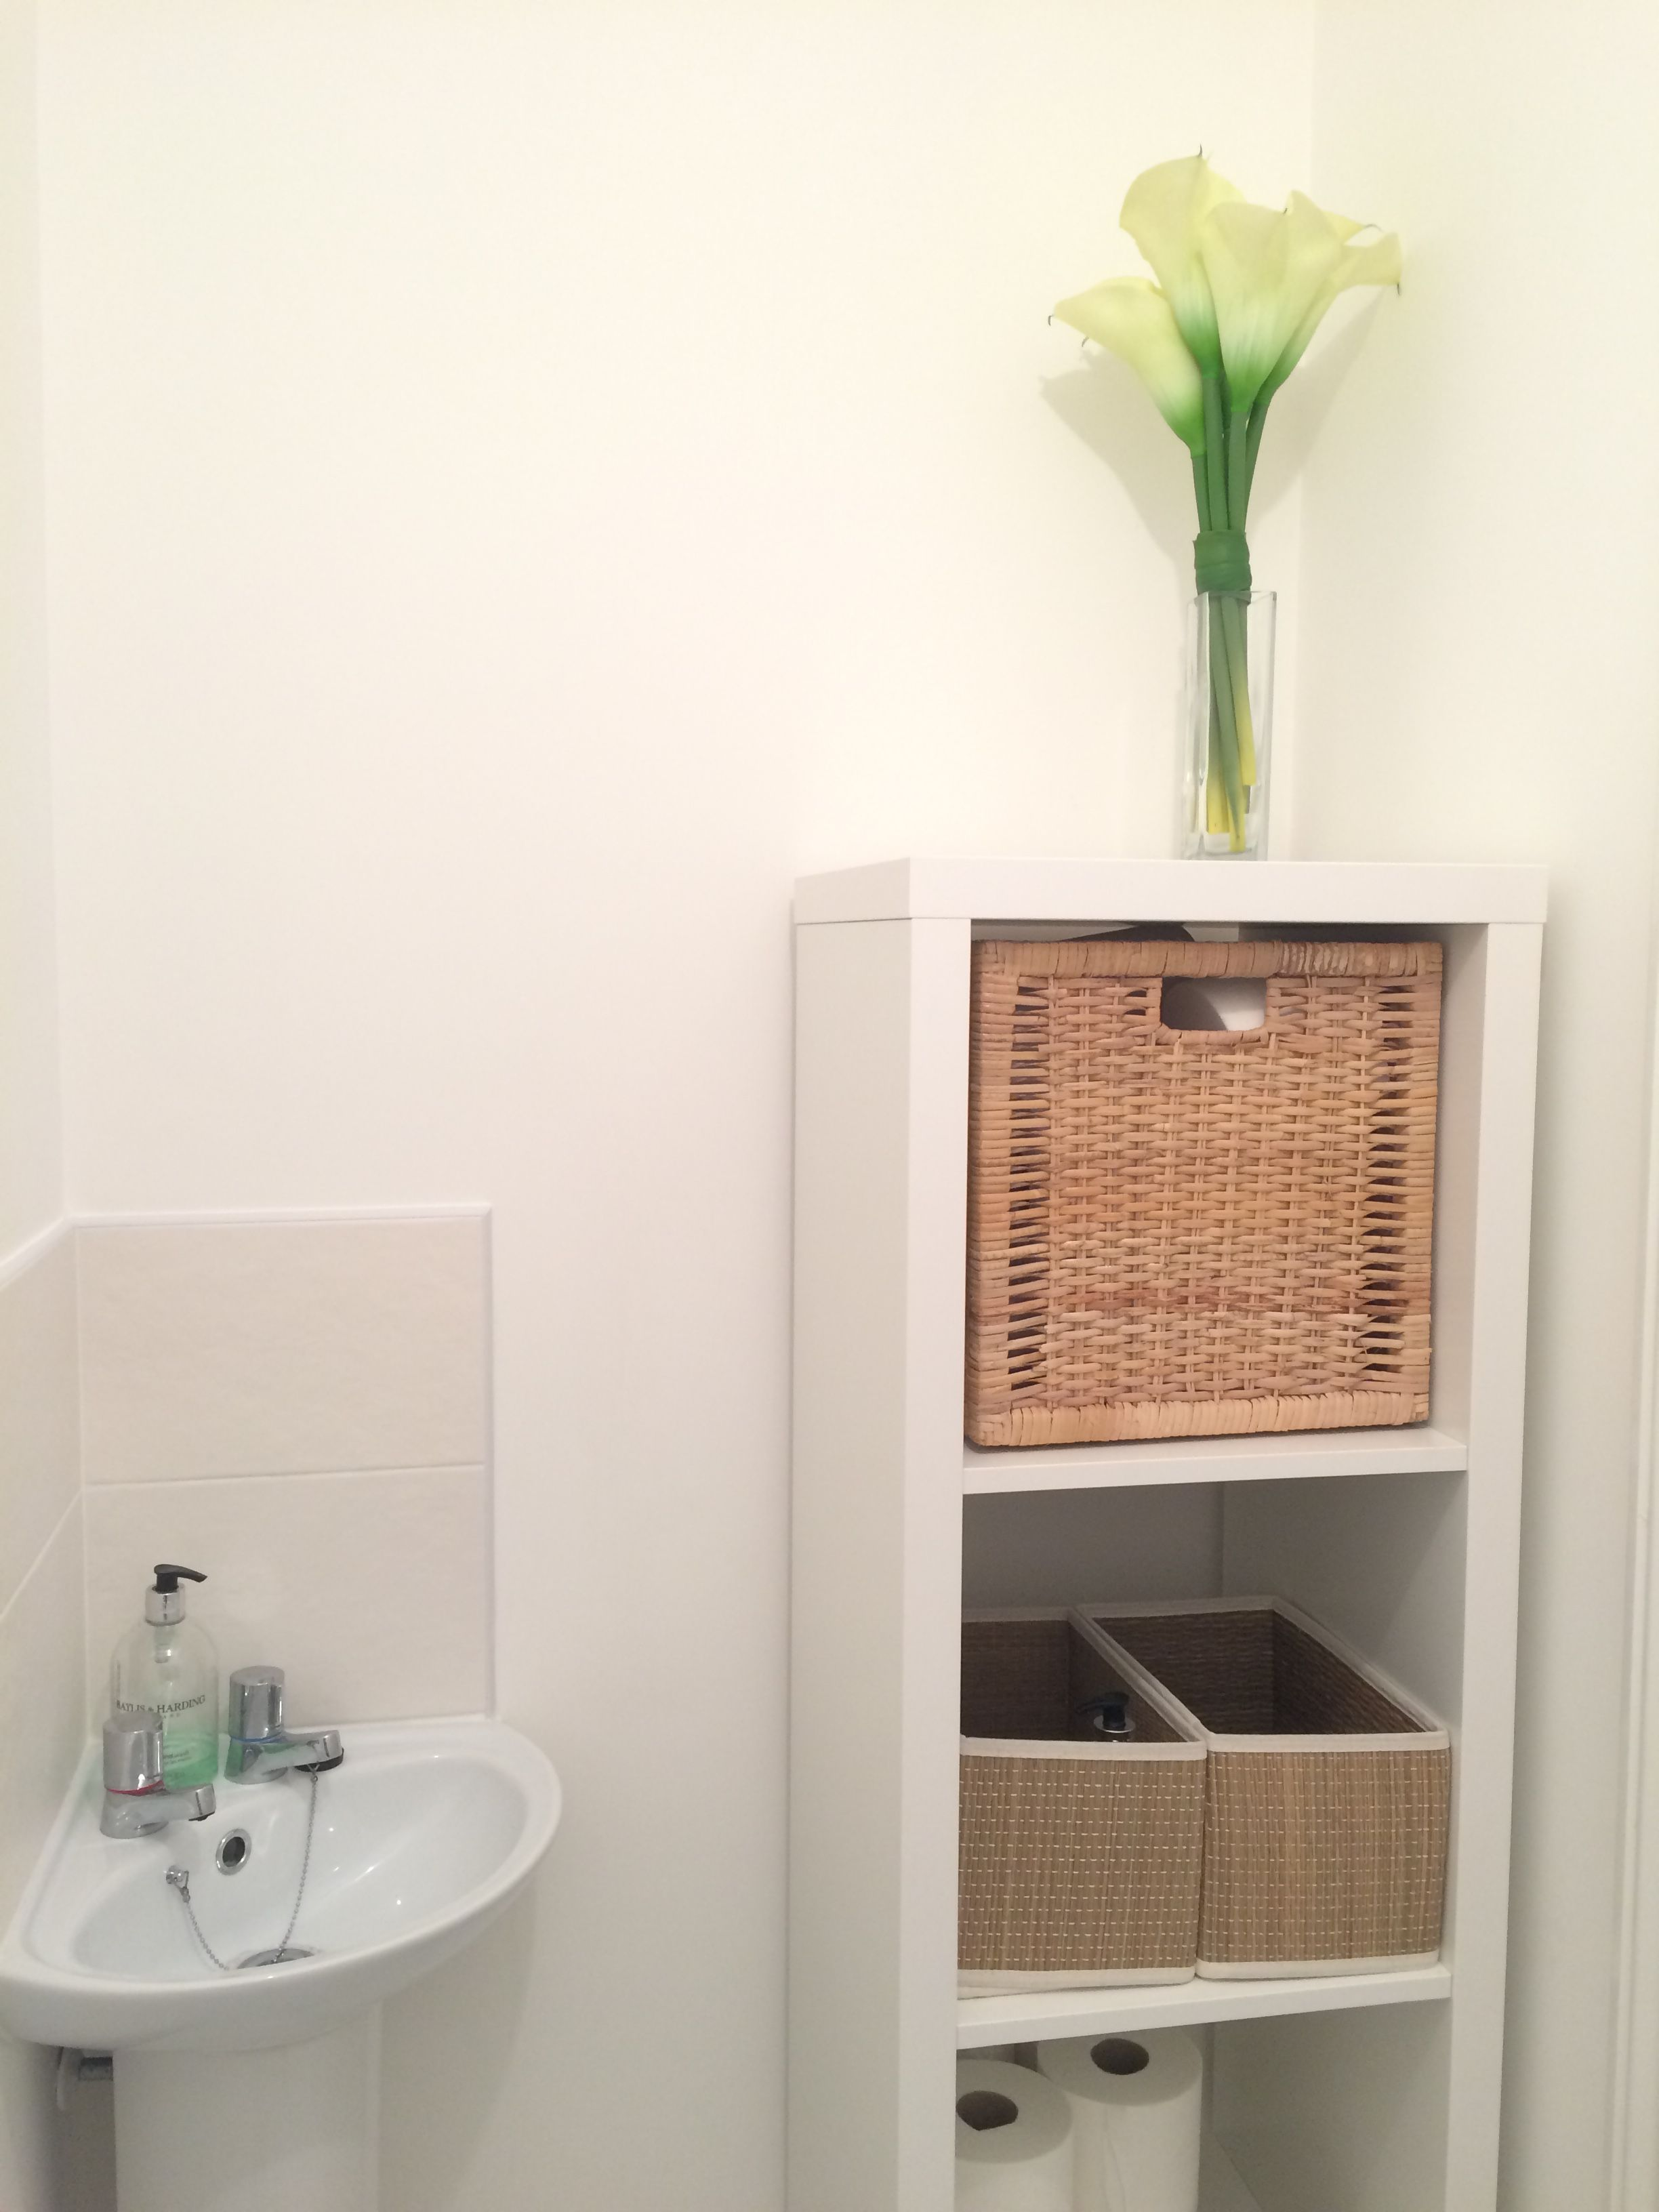 Kallax Badezimmer Ikea Kallax Downstairs Bathroom In 2019 Badezimmer Im